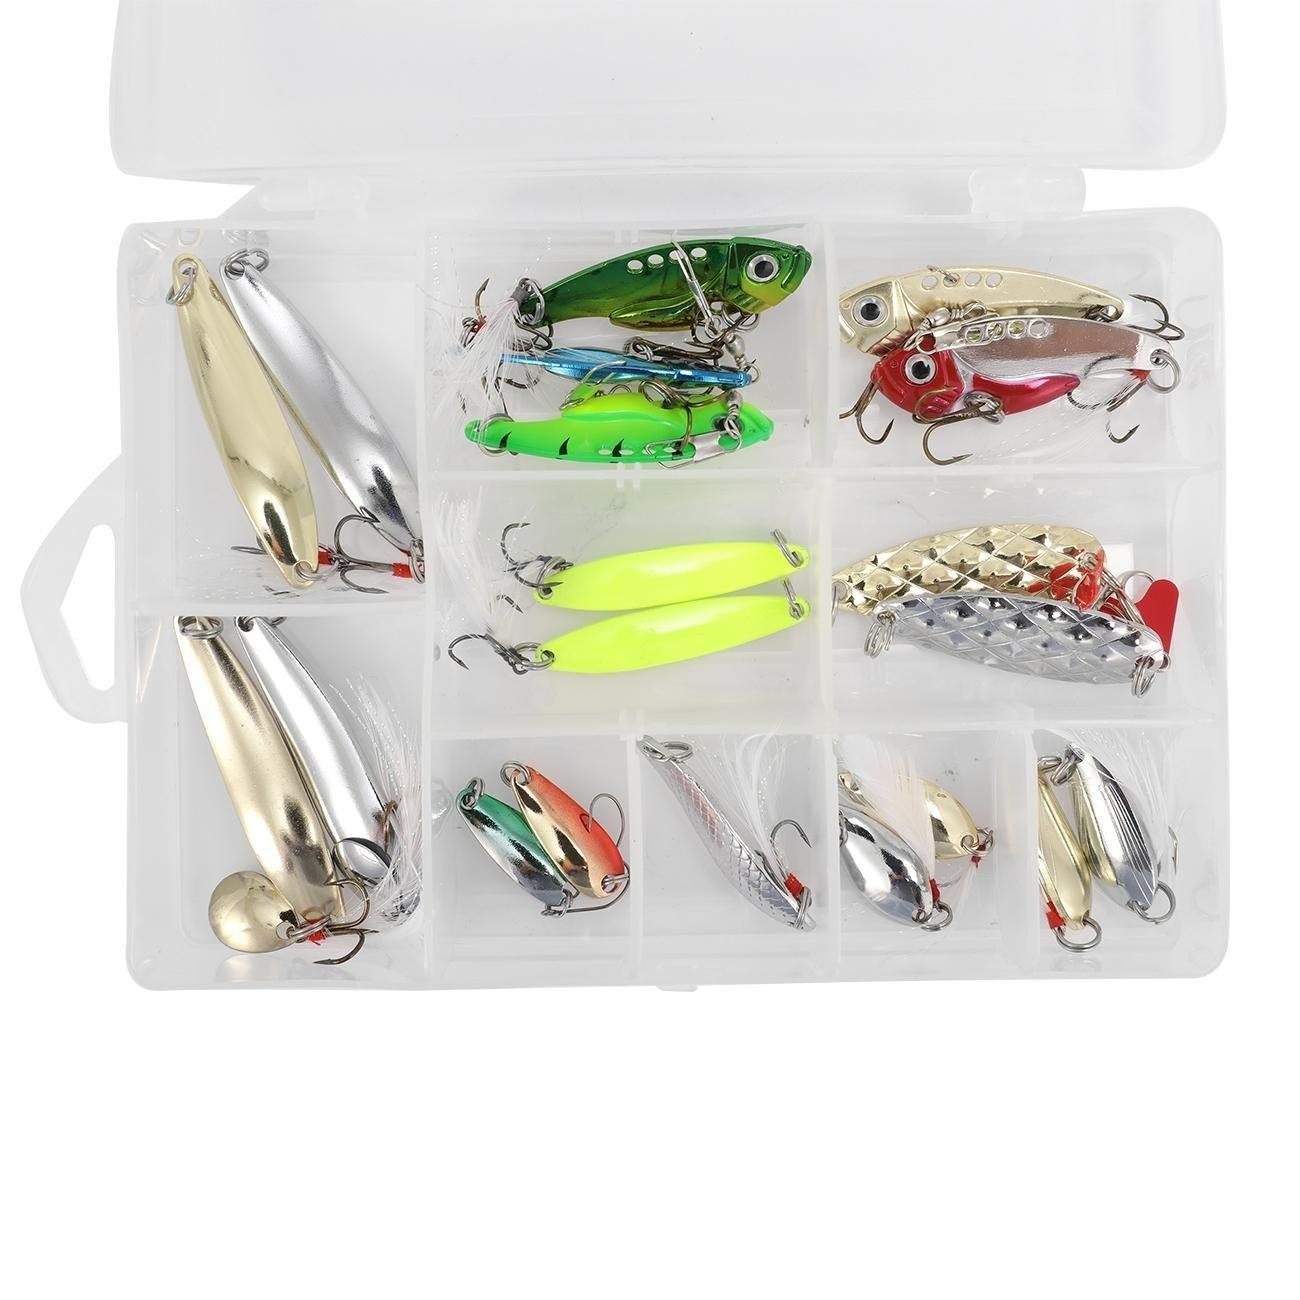 Dyna-Living Fishing Spoons Set Fishing Lures Metal VIB Spoons Spinner Hard Baits Tackle Set for Trout Bass Salmon Freshwater Saltwater